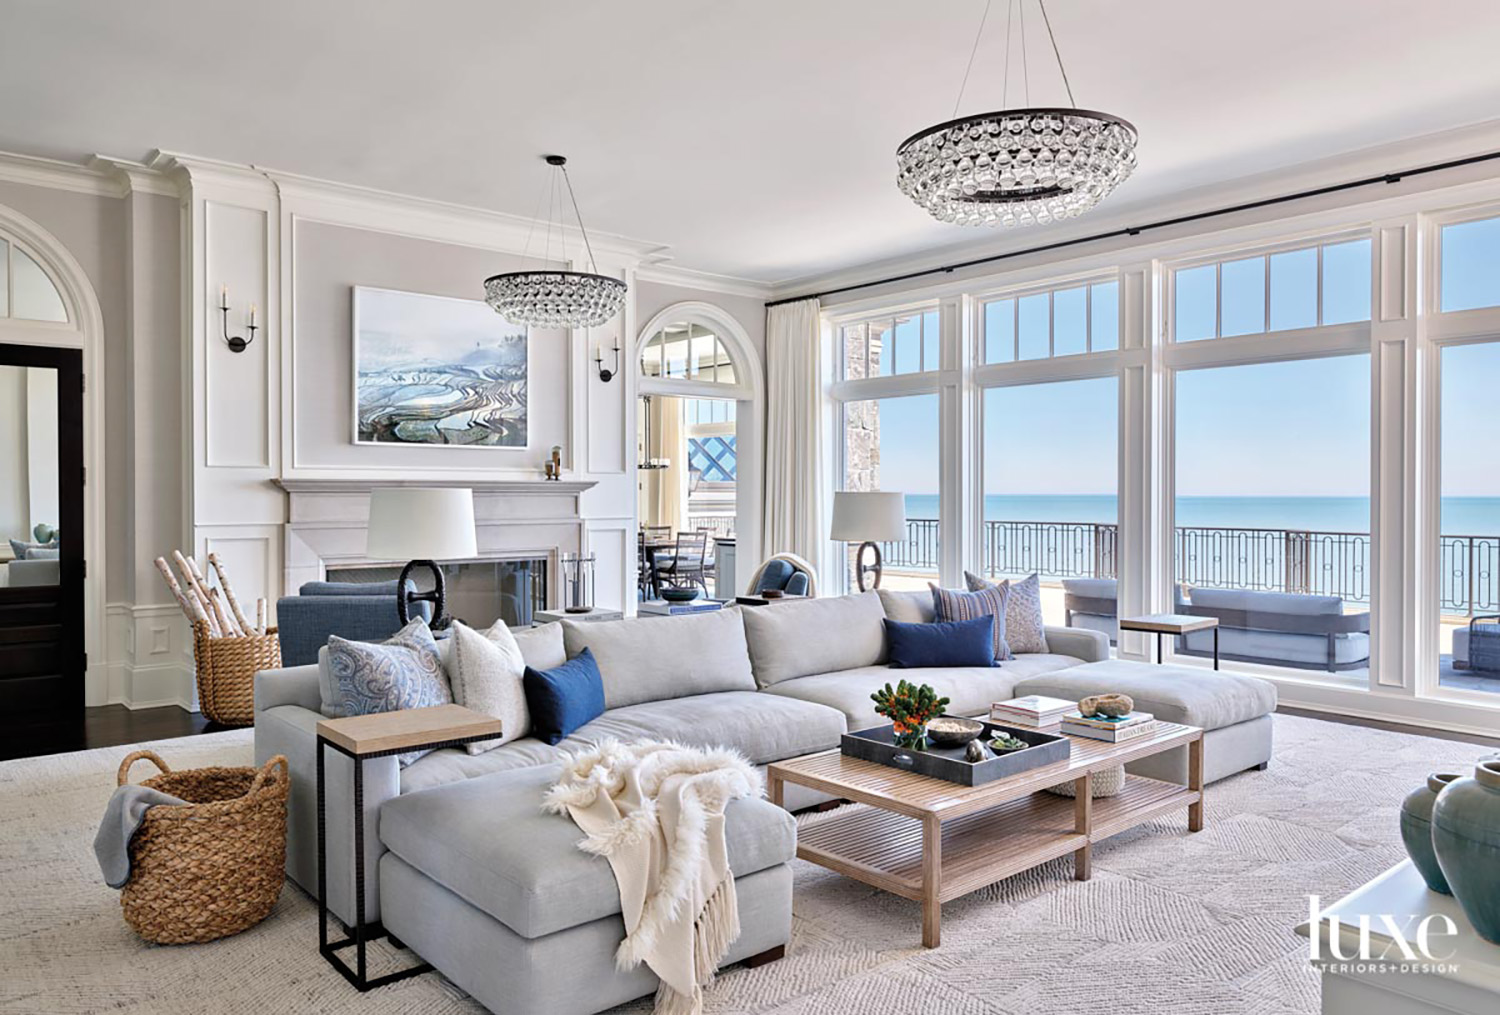 gray living room with large sectional, a fireplace and two chandeliers. The room has floor-to-ceiling windows